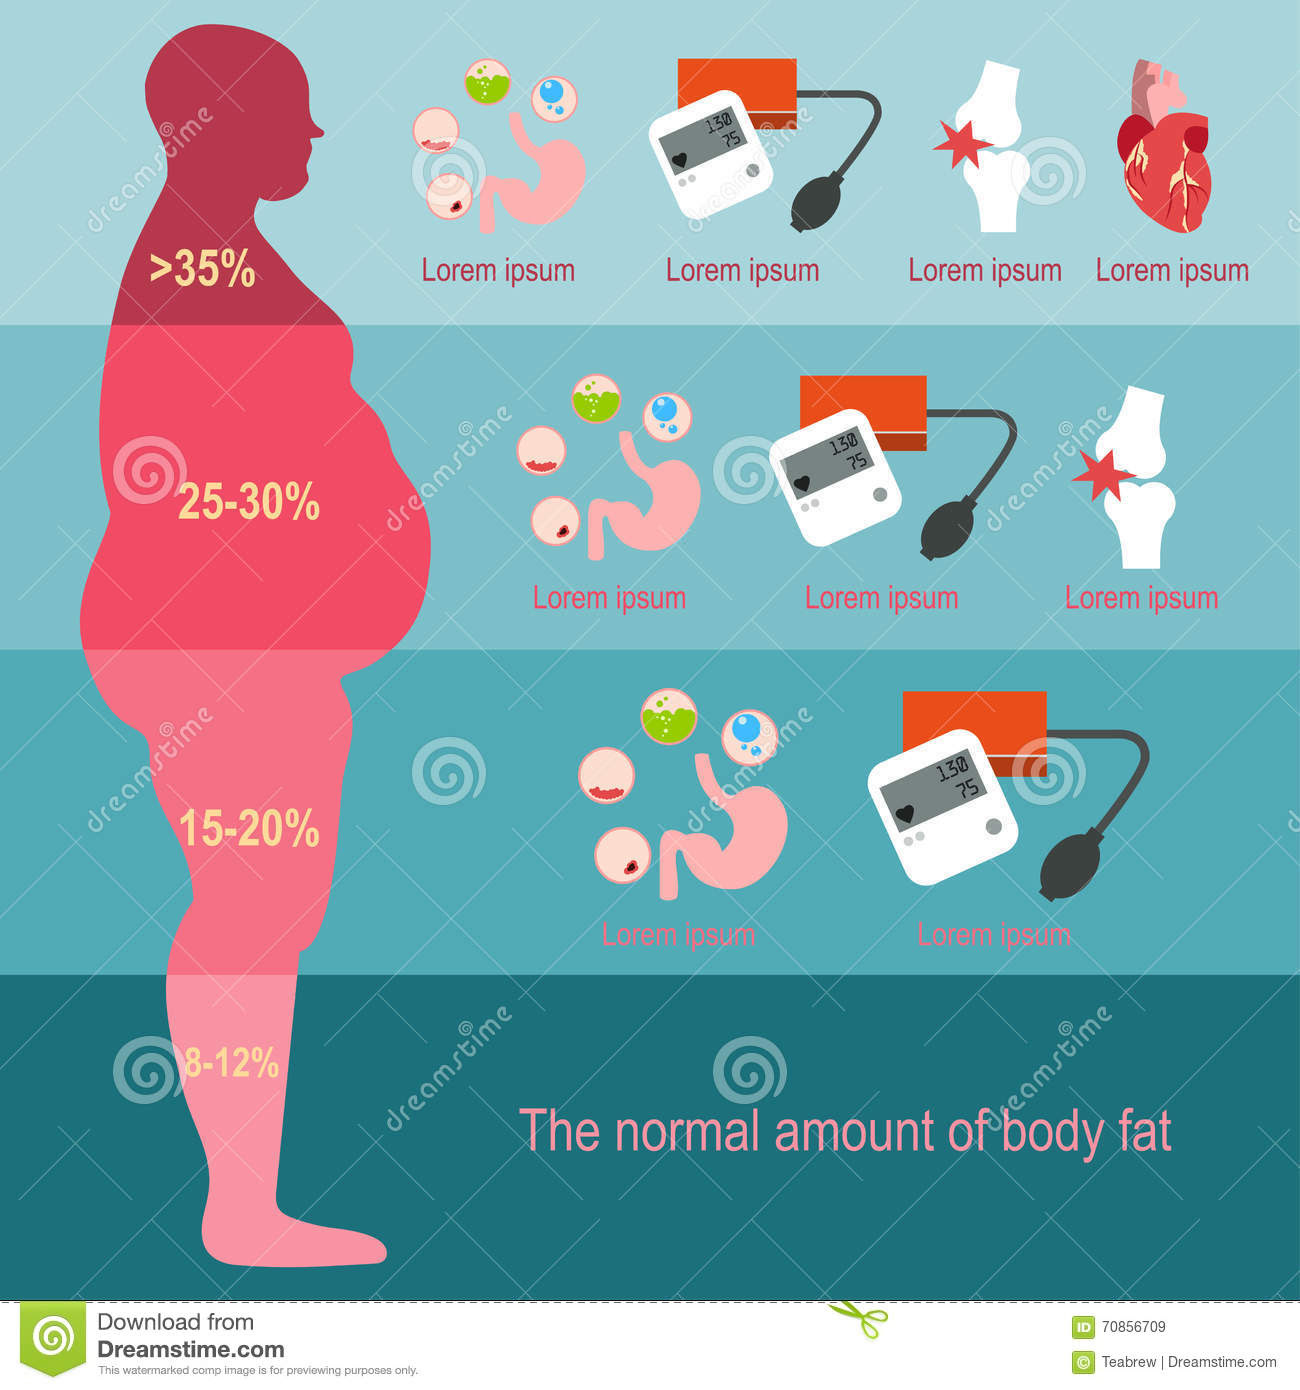 body fat percentage based on pictures